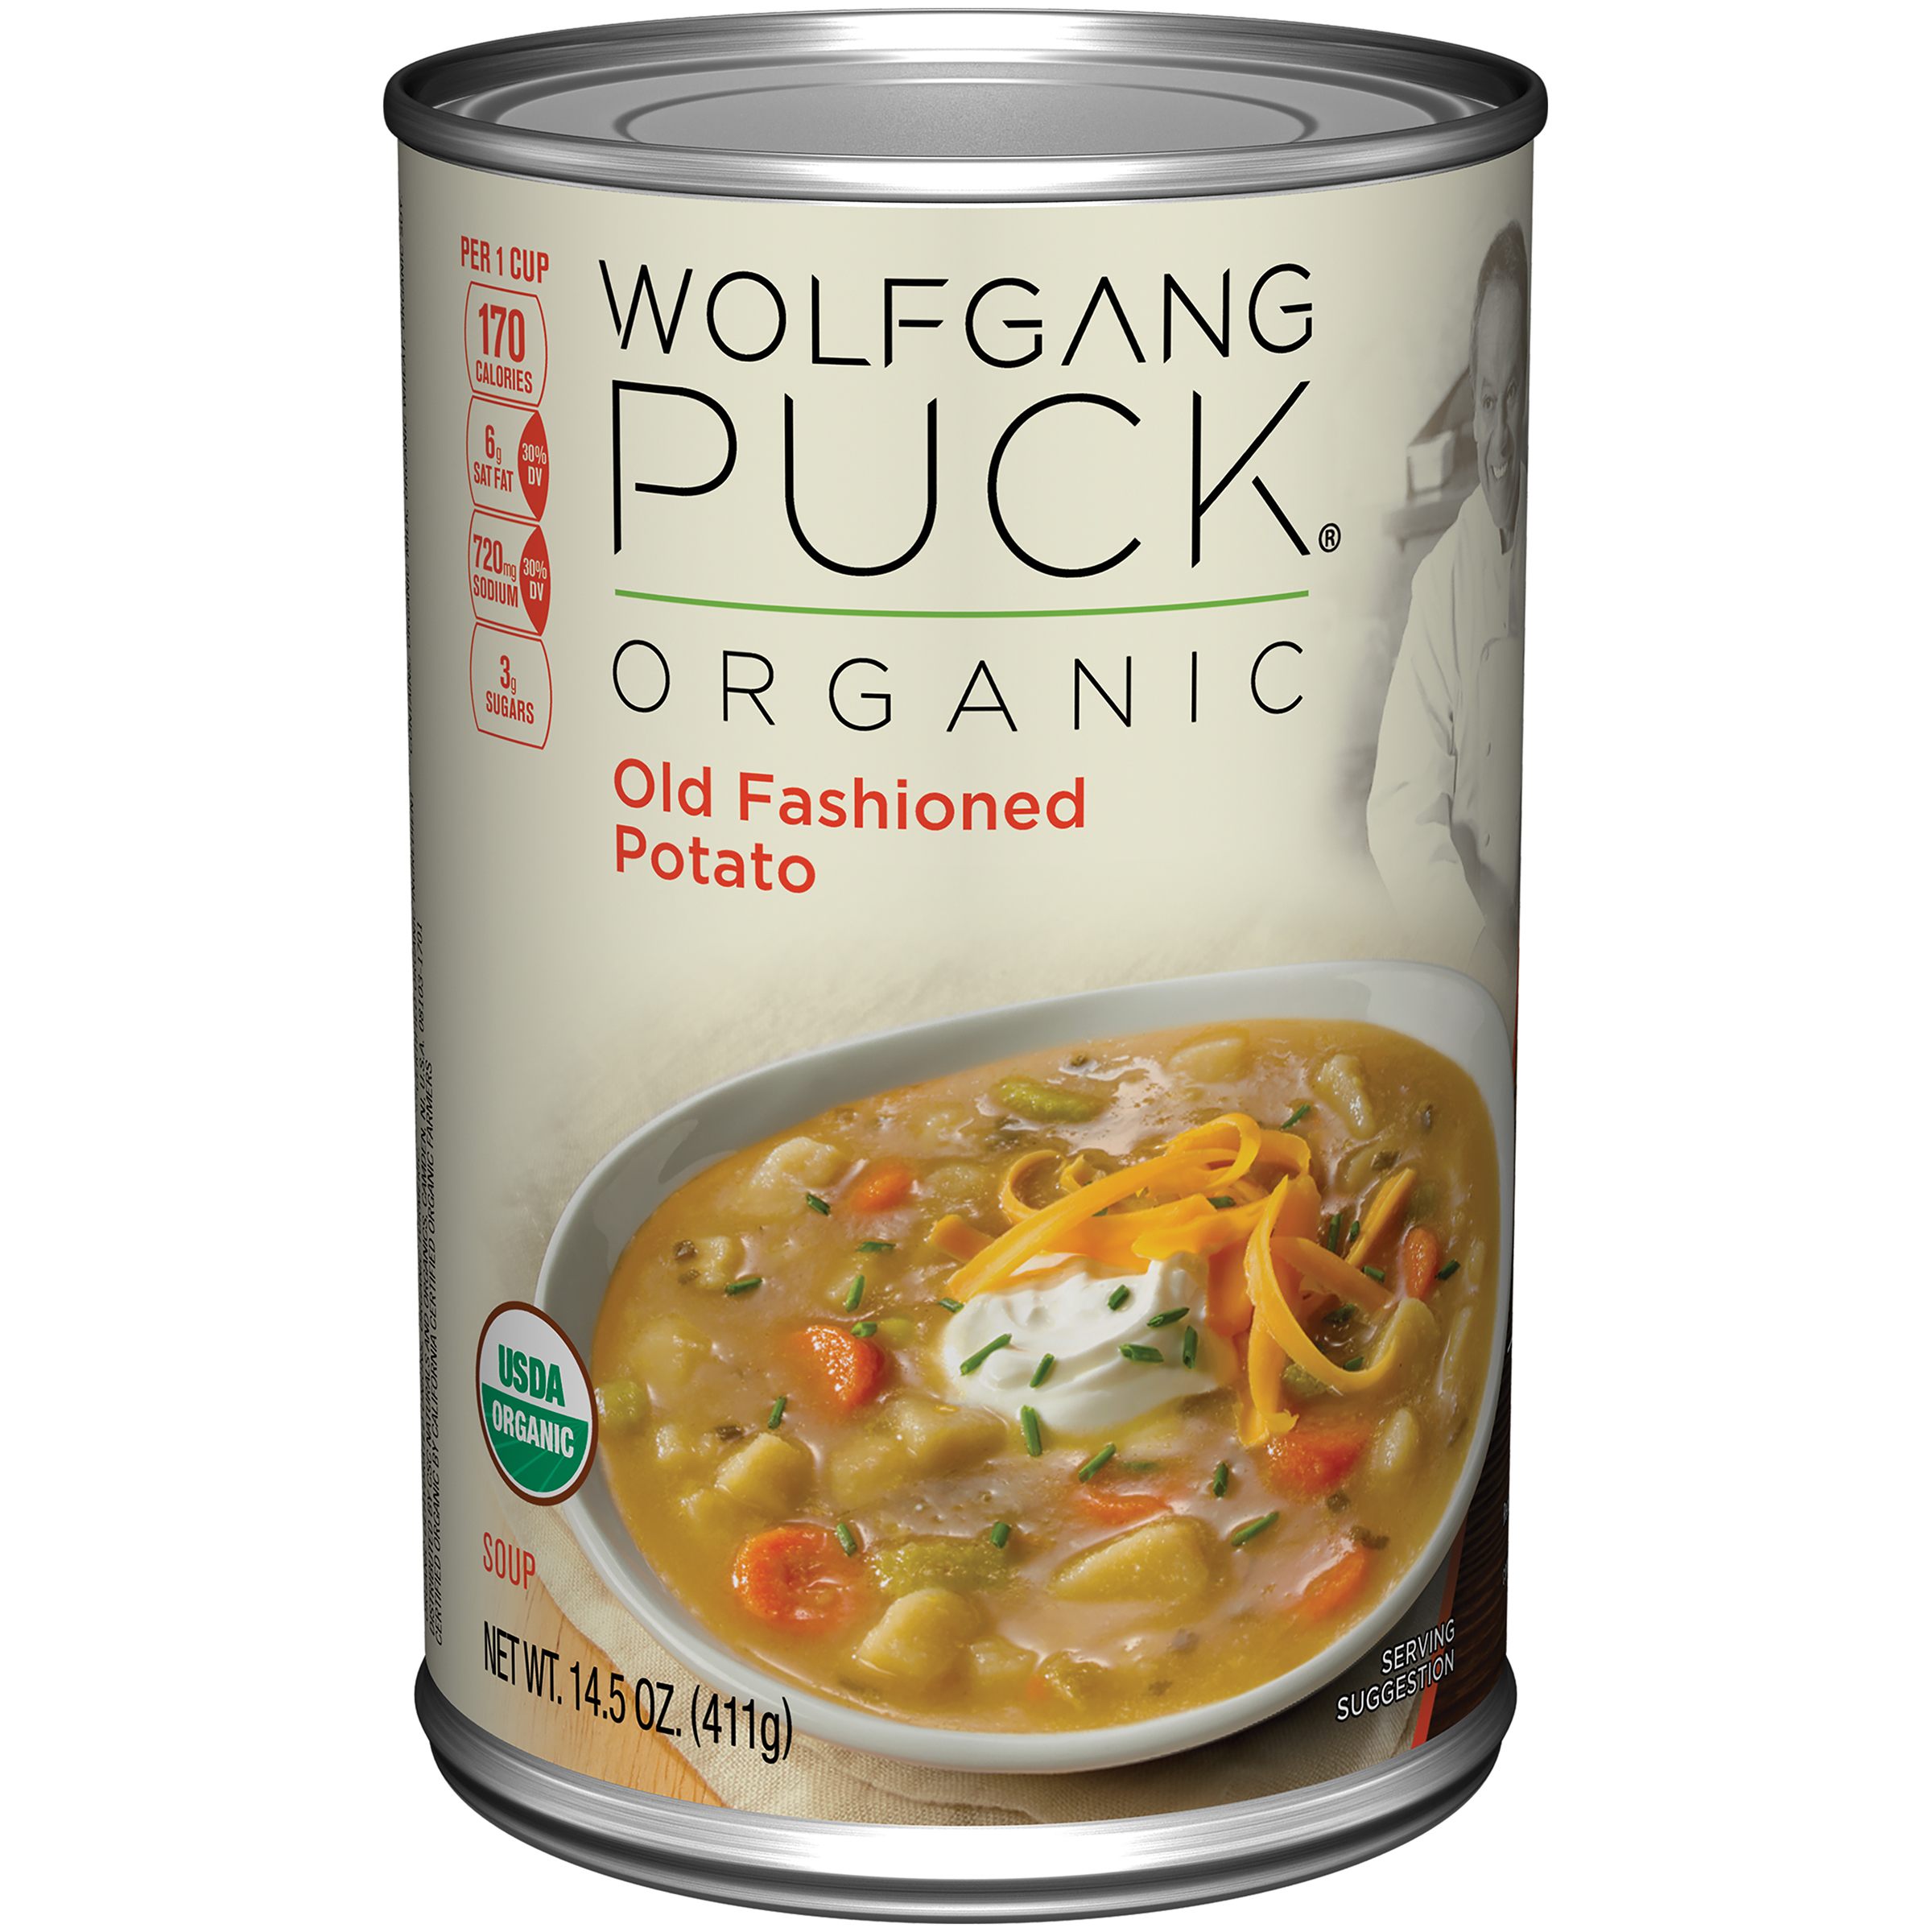 Wolfgang Puck Organic Old Fashioned Potato Soup 14.5oz